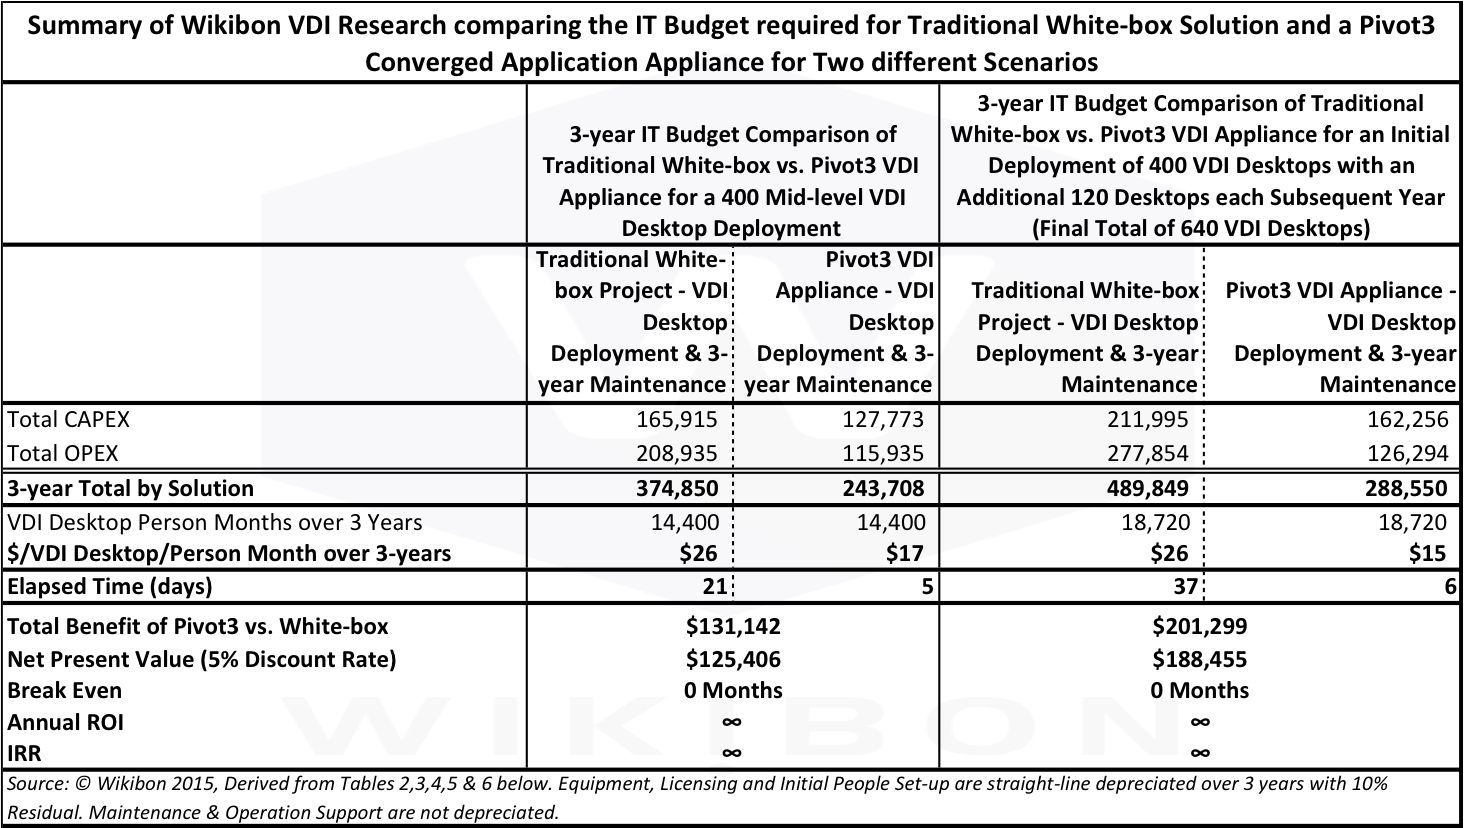 Table 1: Summary of Wikibon VDI Research comparing the IT Budget required for Traditional White-box Solution and a Pivot3 Converged Application Appliance for Two different Scenarios  Source: © Wikibon 2015, Derived from Tables 3,4,5 & 6 in the Footnotes below.